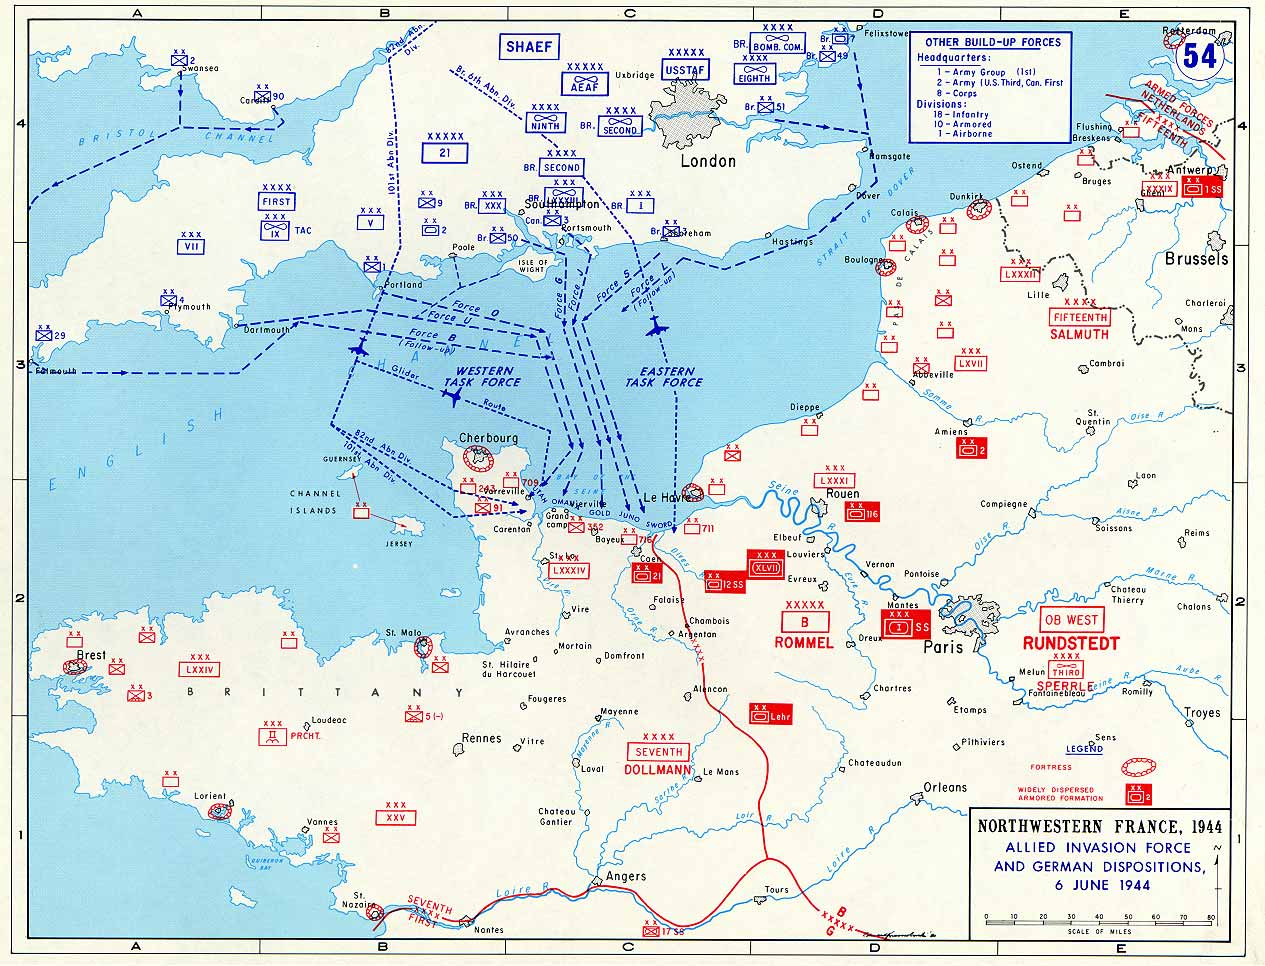 Allied Invasion Force and German Dispositions Map